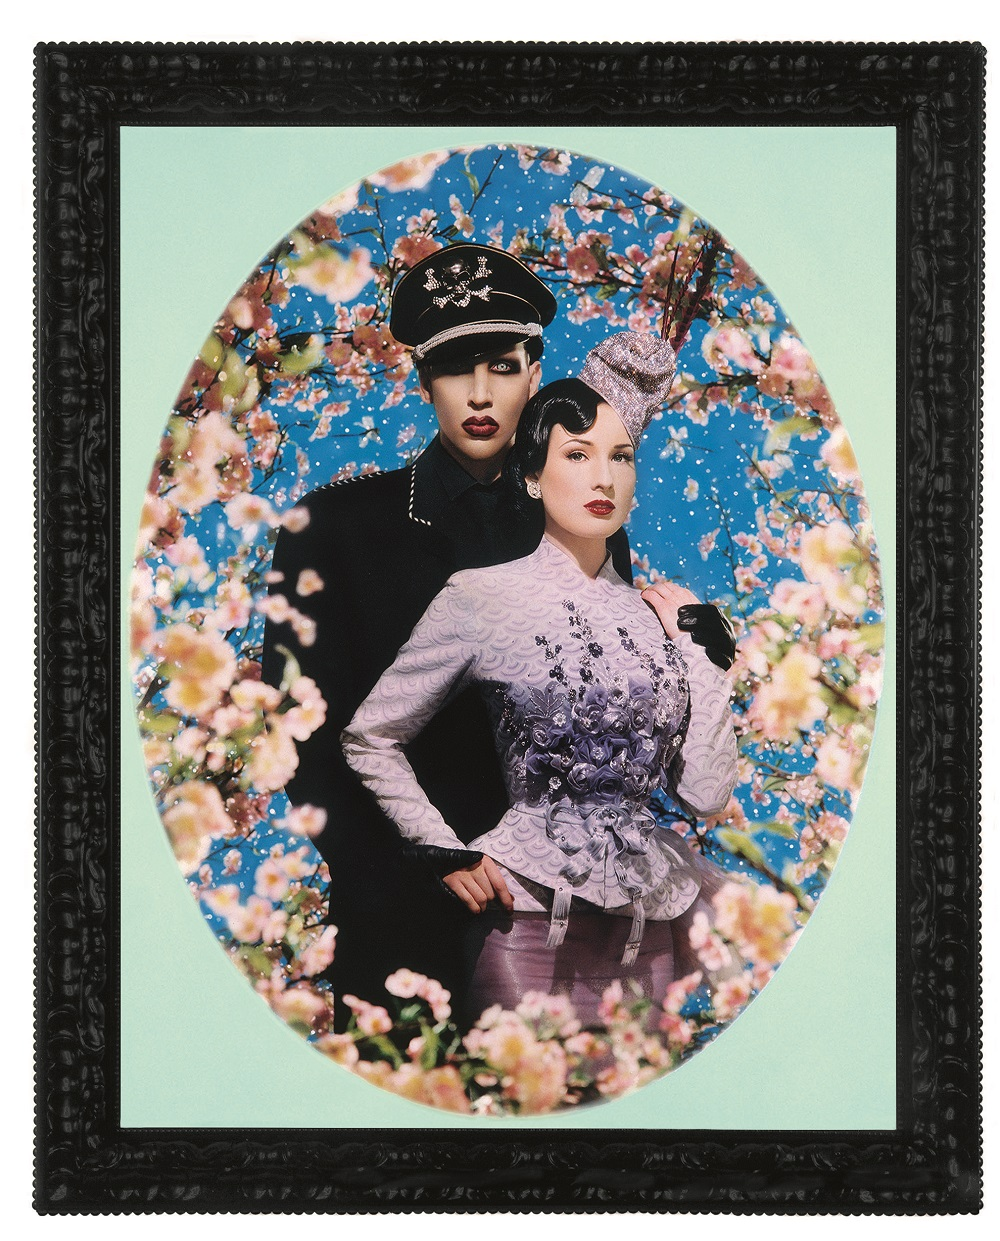 Le Grand Amour, Marilyn Manson et Dita von Teese, Pinault Collection © Pierre et Gilles, Courtesy Noirmontartproduction